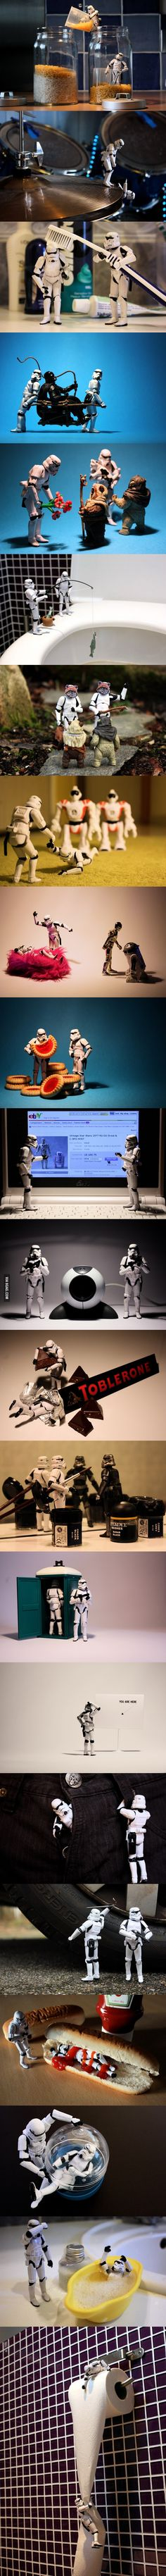 A day in the life of stormtrooper. I love these.  Way better than elf on a shelf.